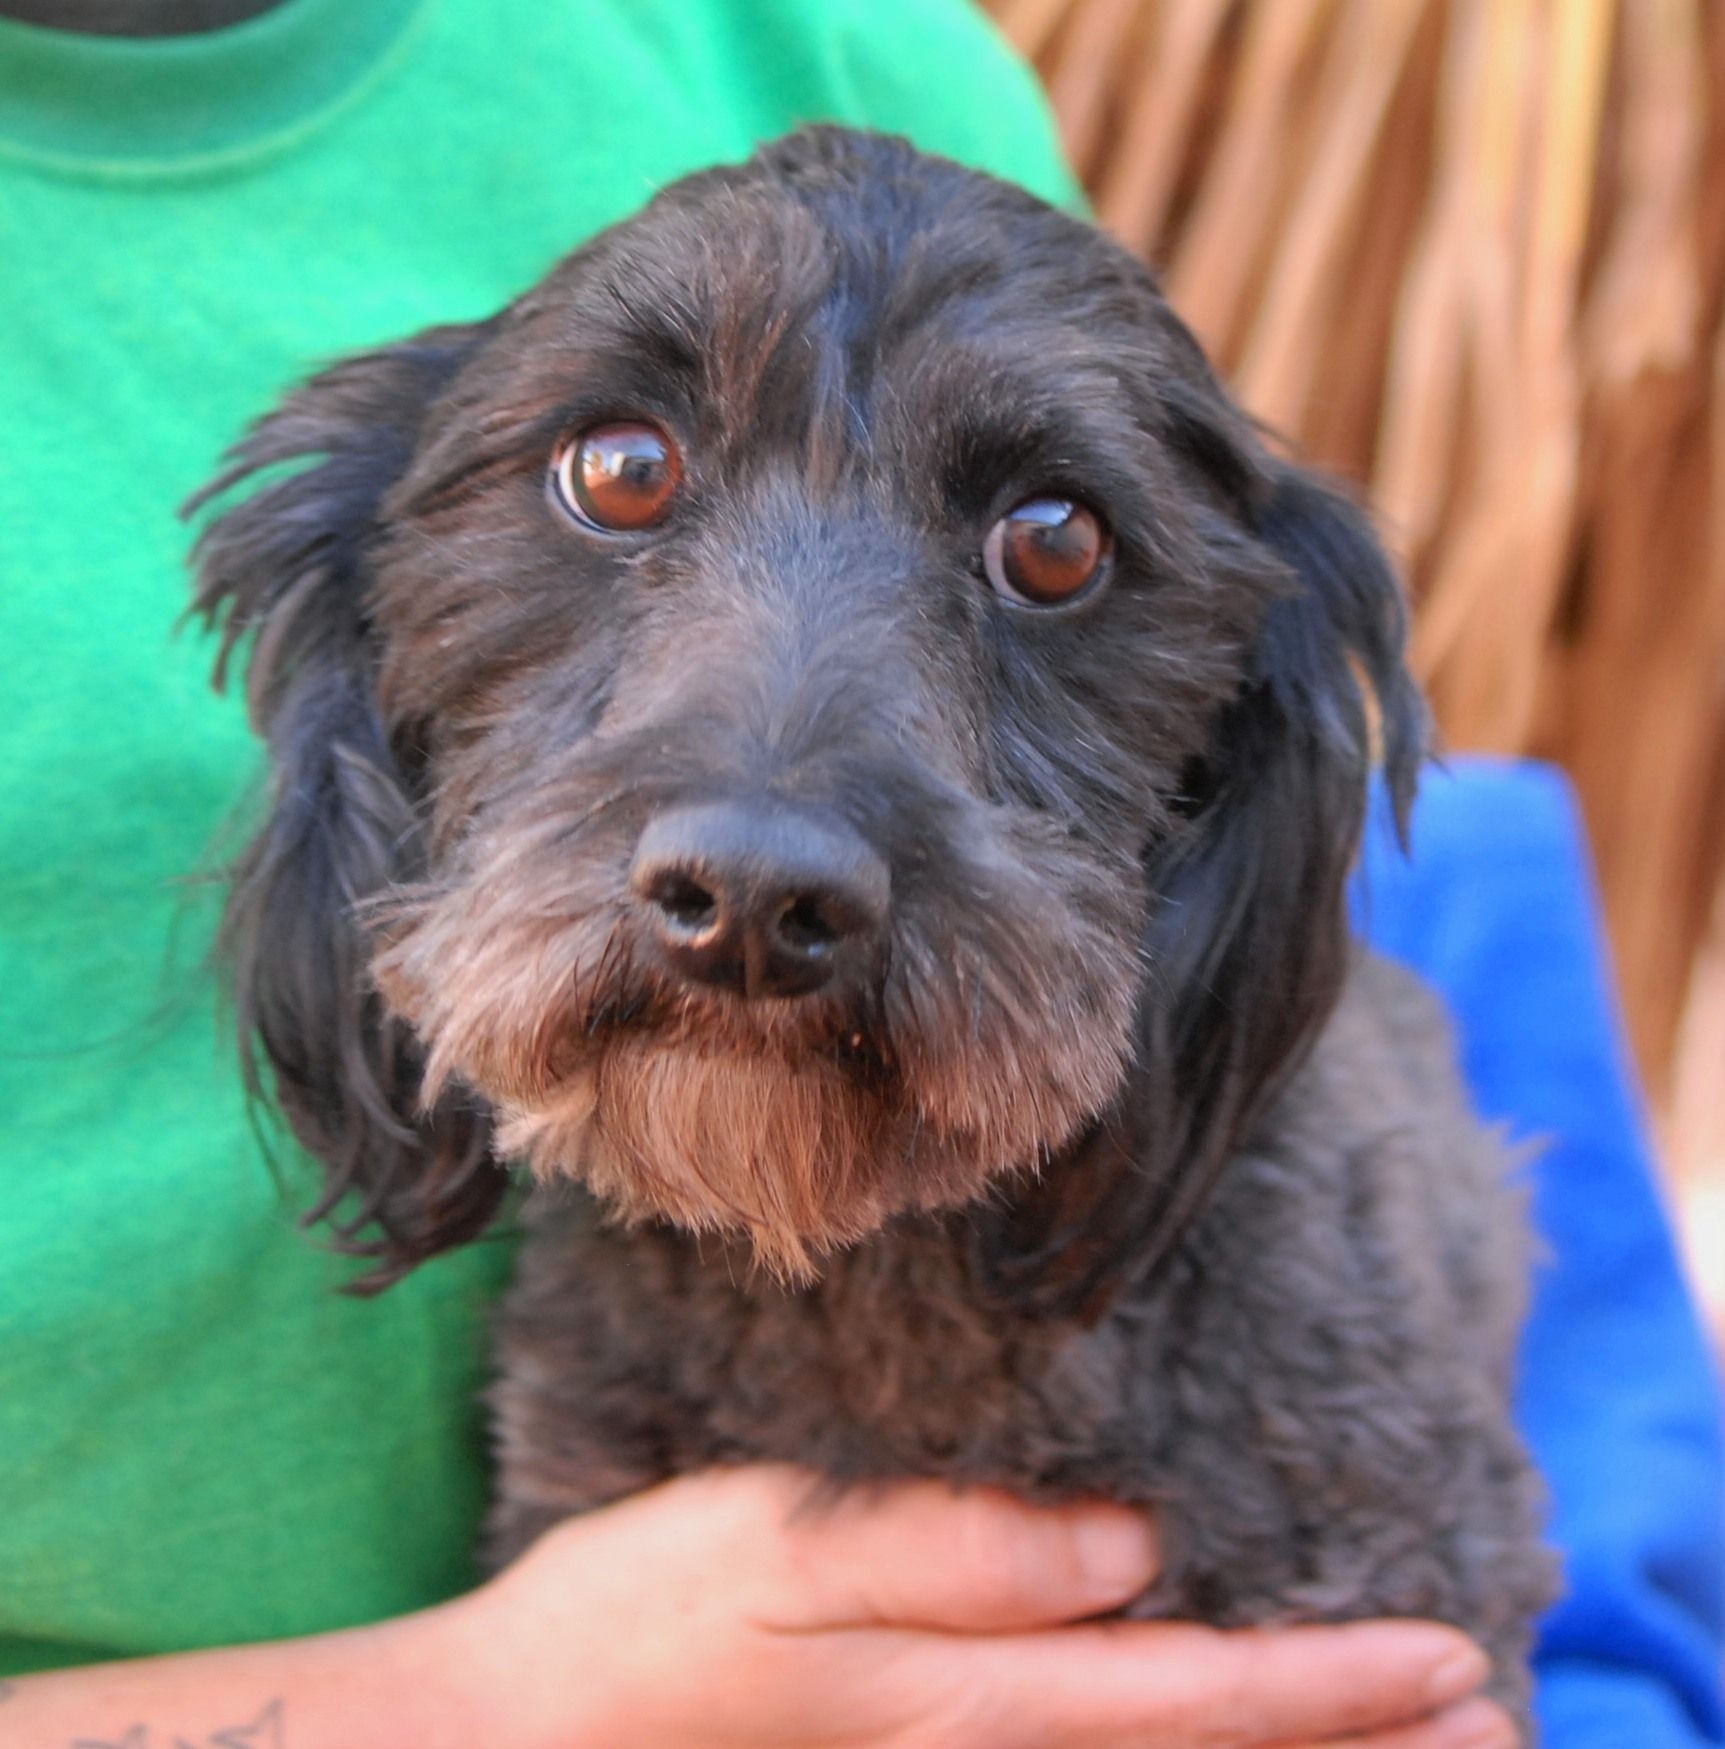 Olivia is ready to bloom and we are so happy to help her discover what a responsible, loving home feels like. This angelic girl was found near one of the busier intersections in Las Vegas with no sign of responsible ownership (no ID tag, no microchip ID, not spayed). Olivia is a darling, quiet-natured Cockapoo, 4 years of age, good with other dogs, now spayed and debuting for adoption at Nevada SPCA (www.nevadaspca.org).